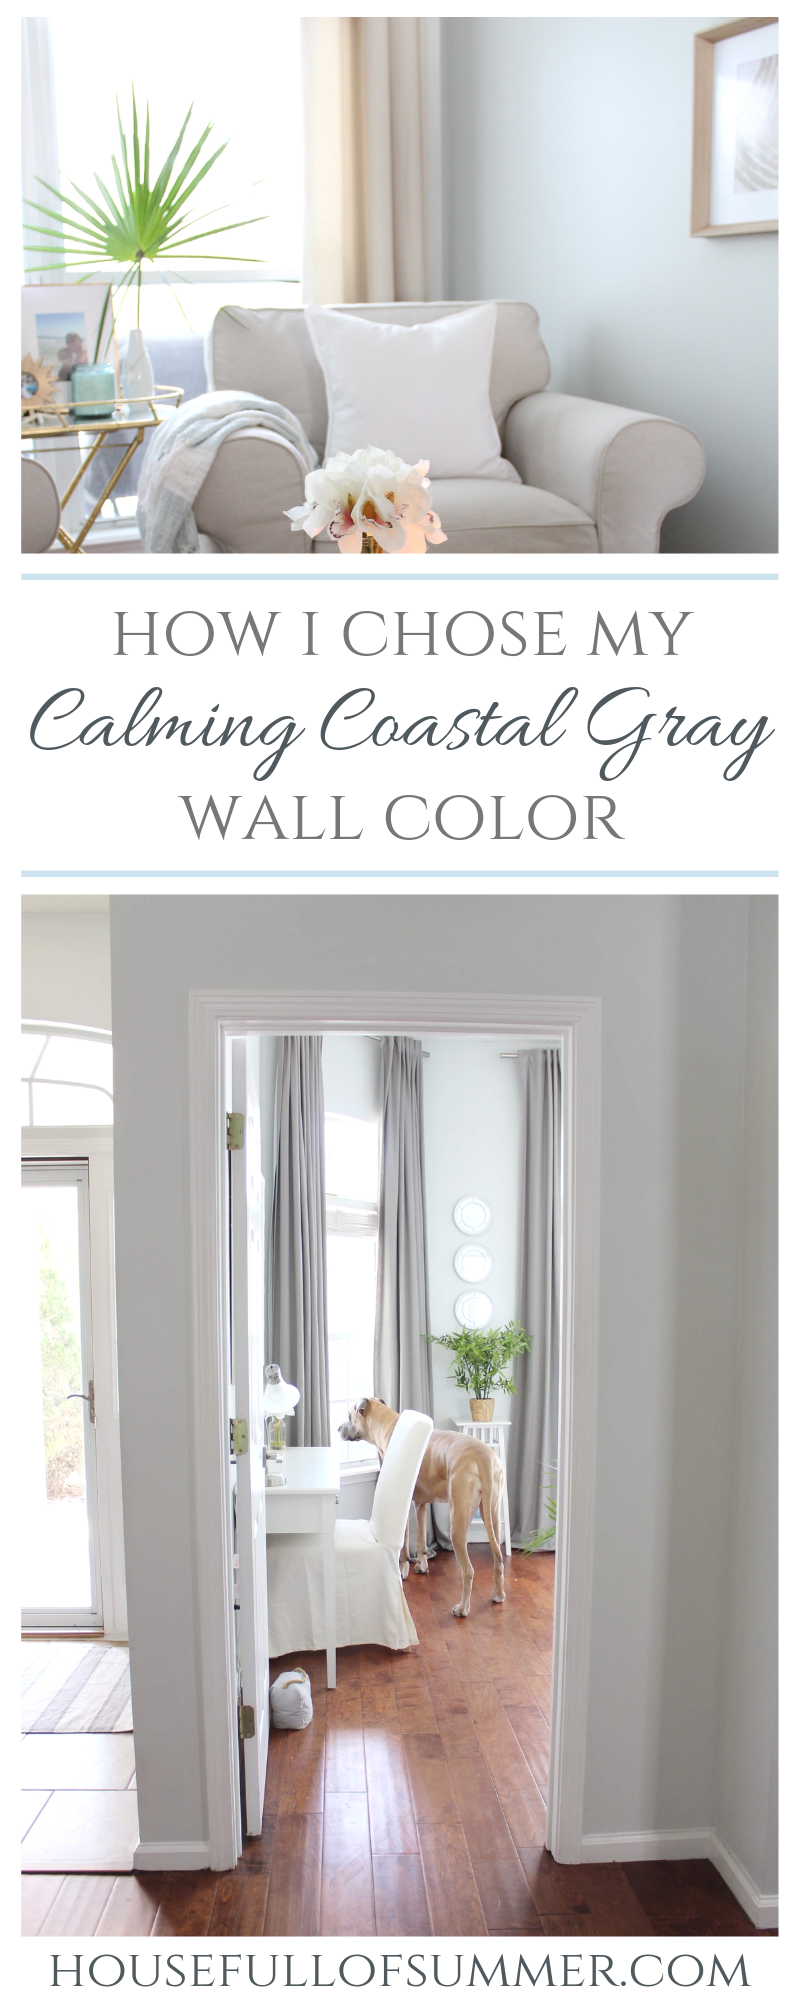 How I Chose My Calming Coastal Gray Wall Color House Full Of